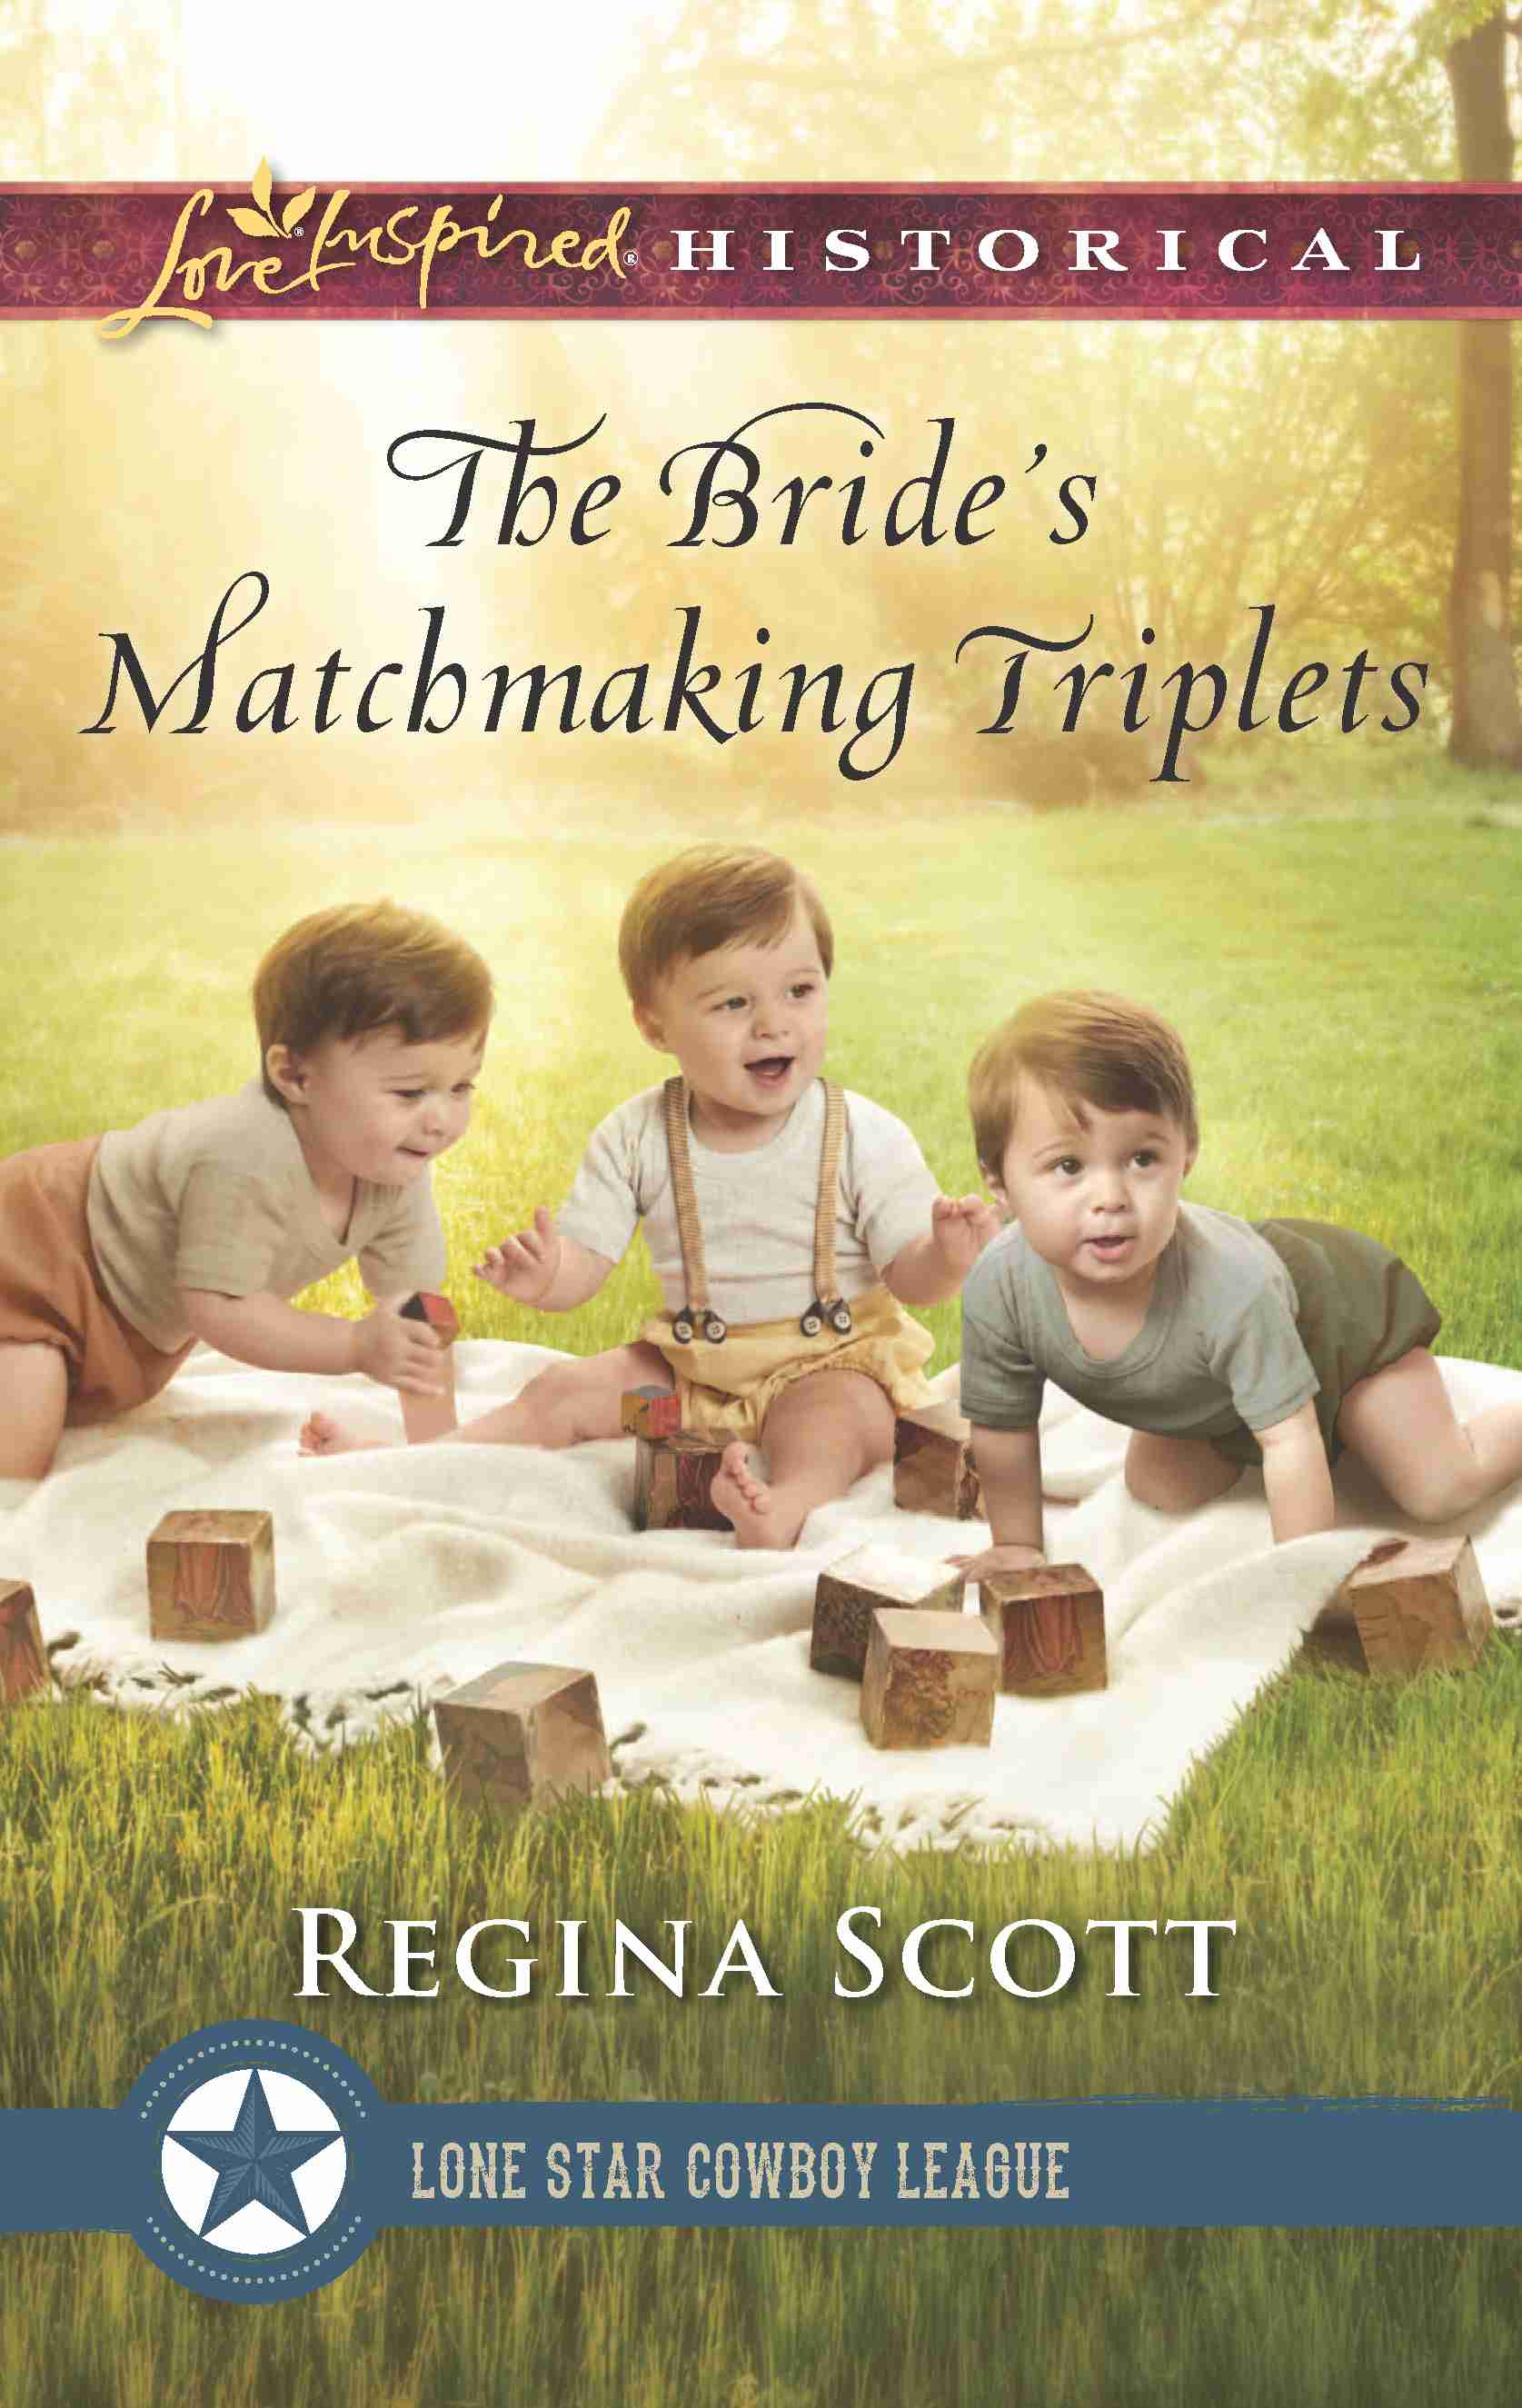 cover for The Bride's Matchmaking Triplets, book 3 in the Lone Star Cowboy League: Multiple Blessings series by historical romance author Regina Scott